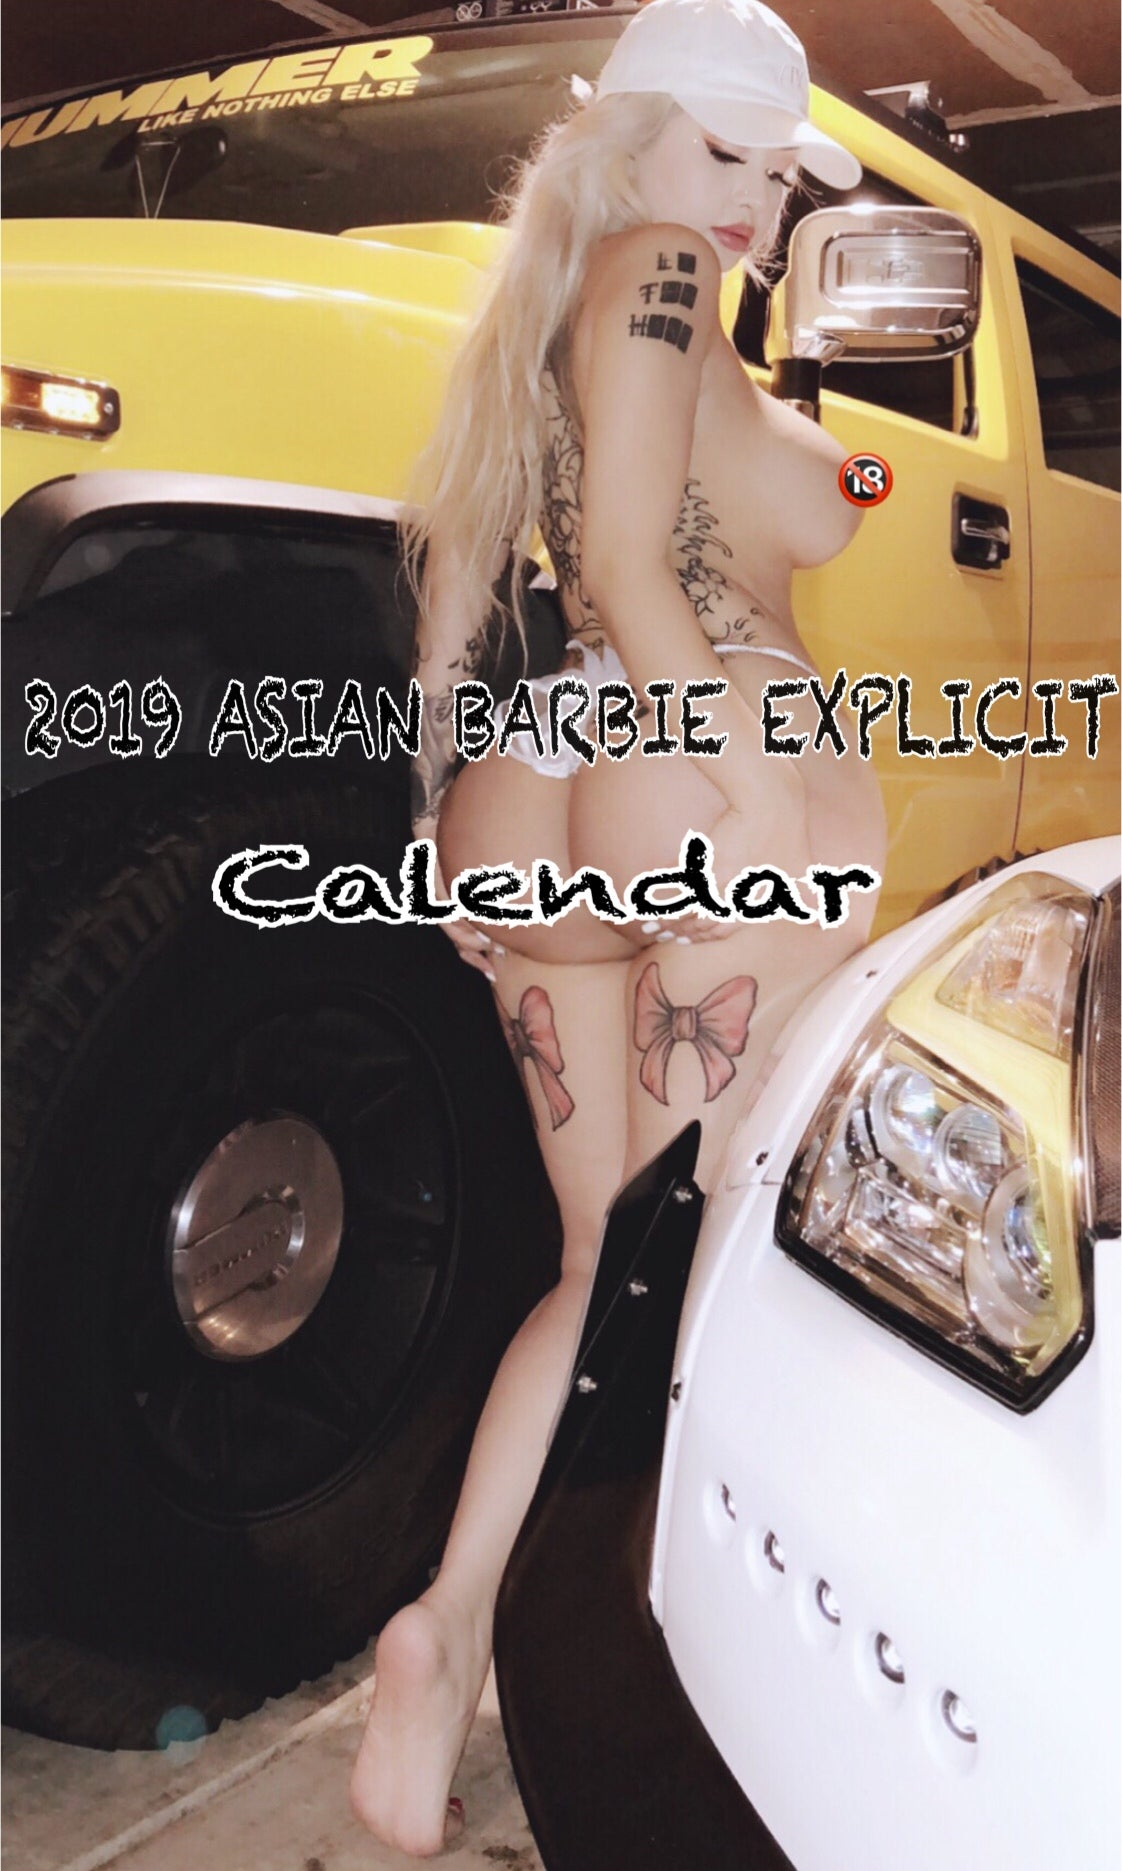 Image of UNCENSORED EXPLICIT CALENDAR